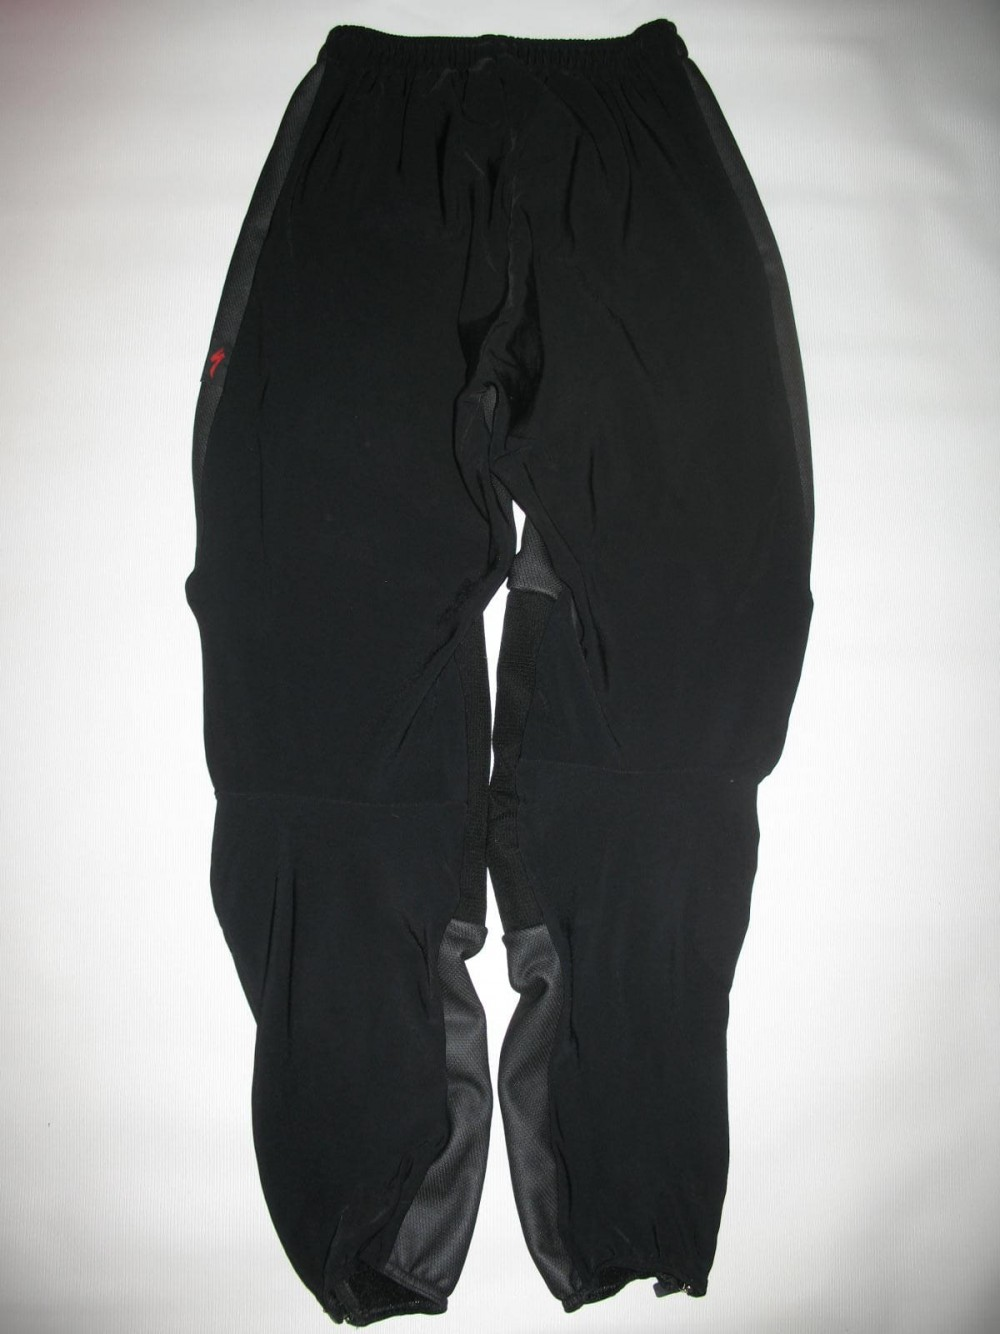 Велобрюки SPECIALIZED windtex cycling pants (размер 5/XL) - 2